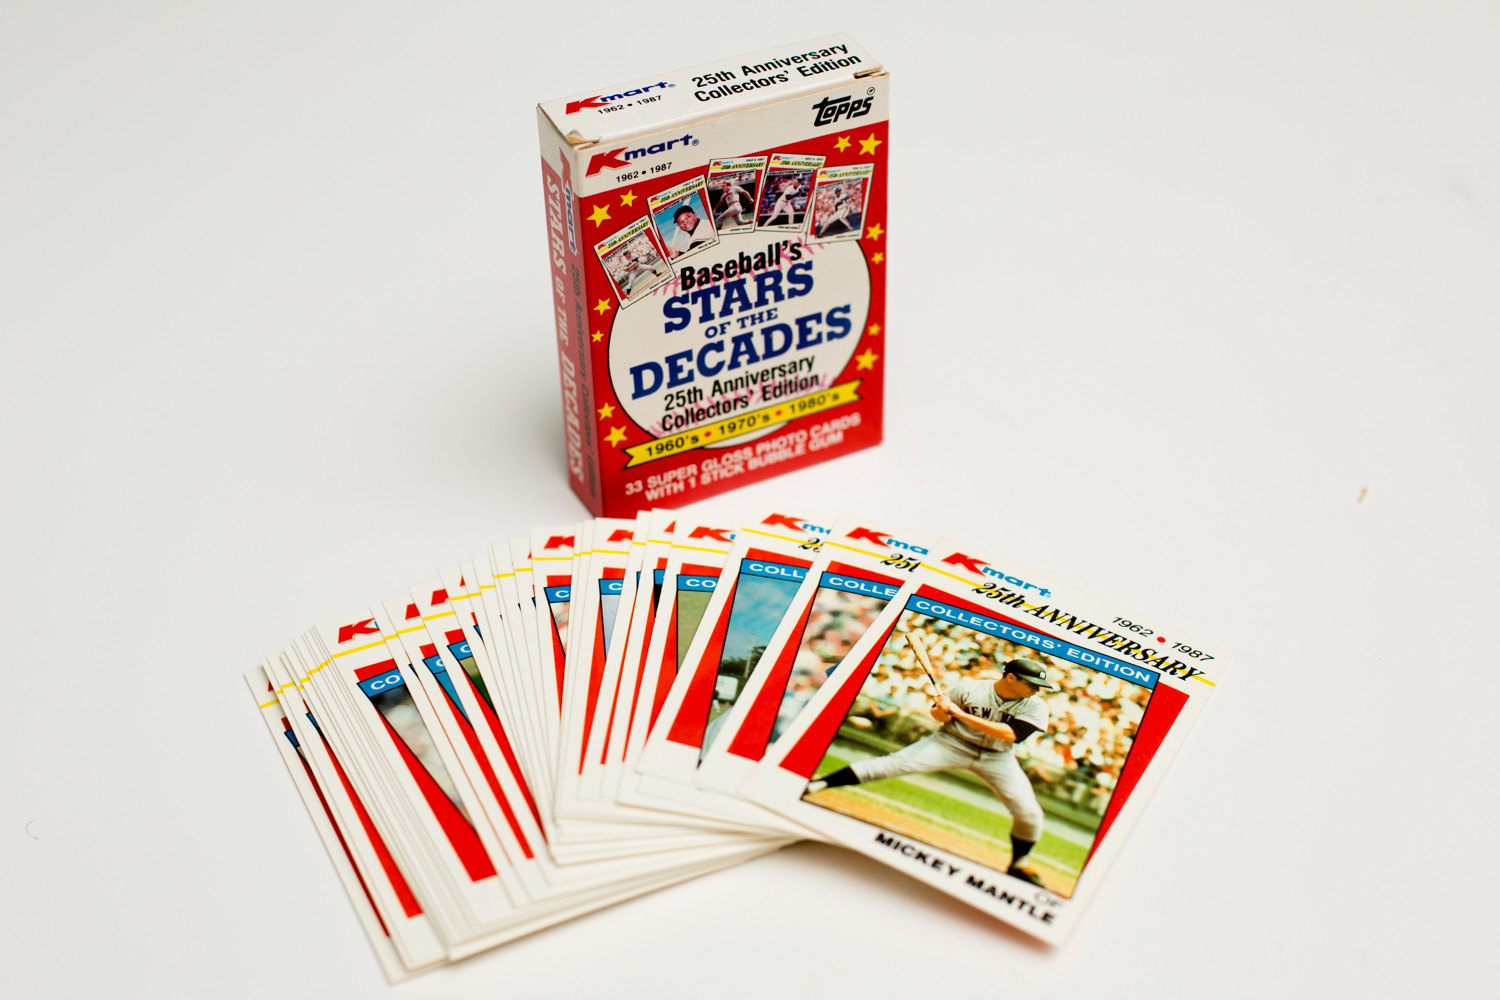 Vintage 1987 Kmart Baseball S Stars Of The Decades Set